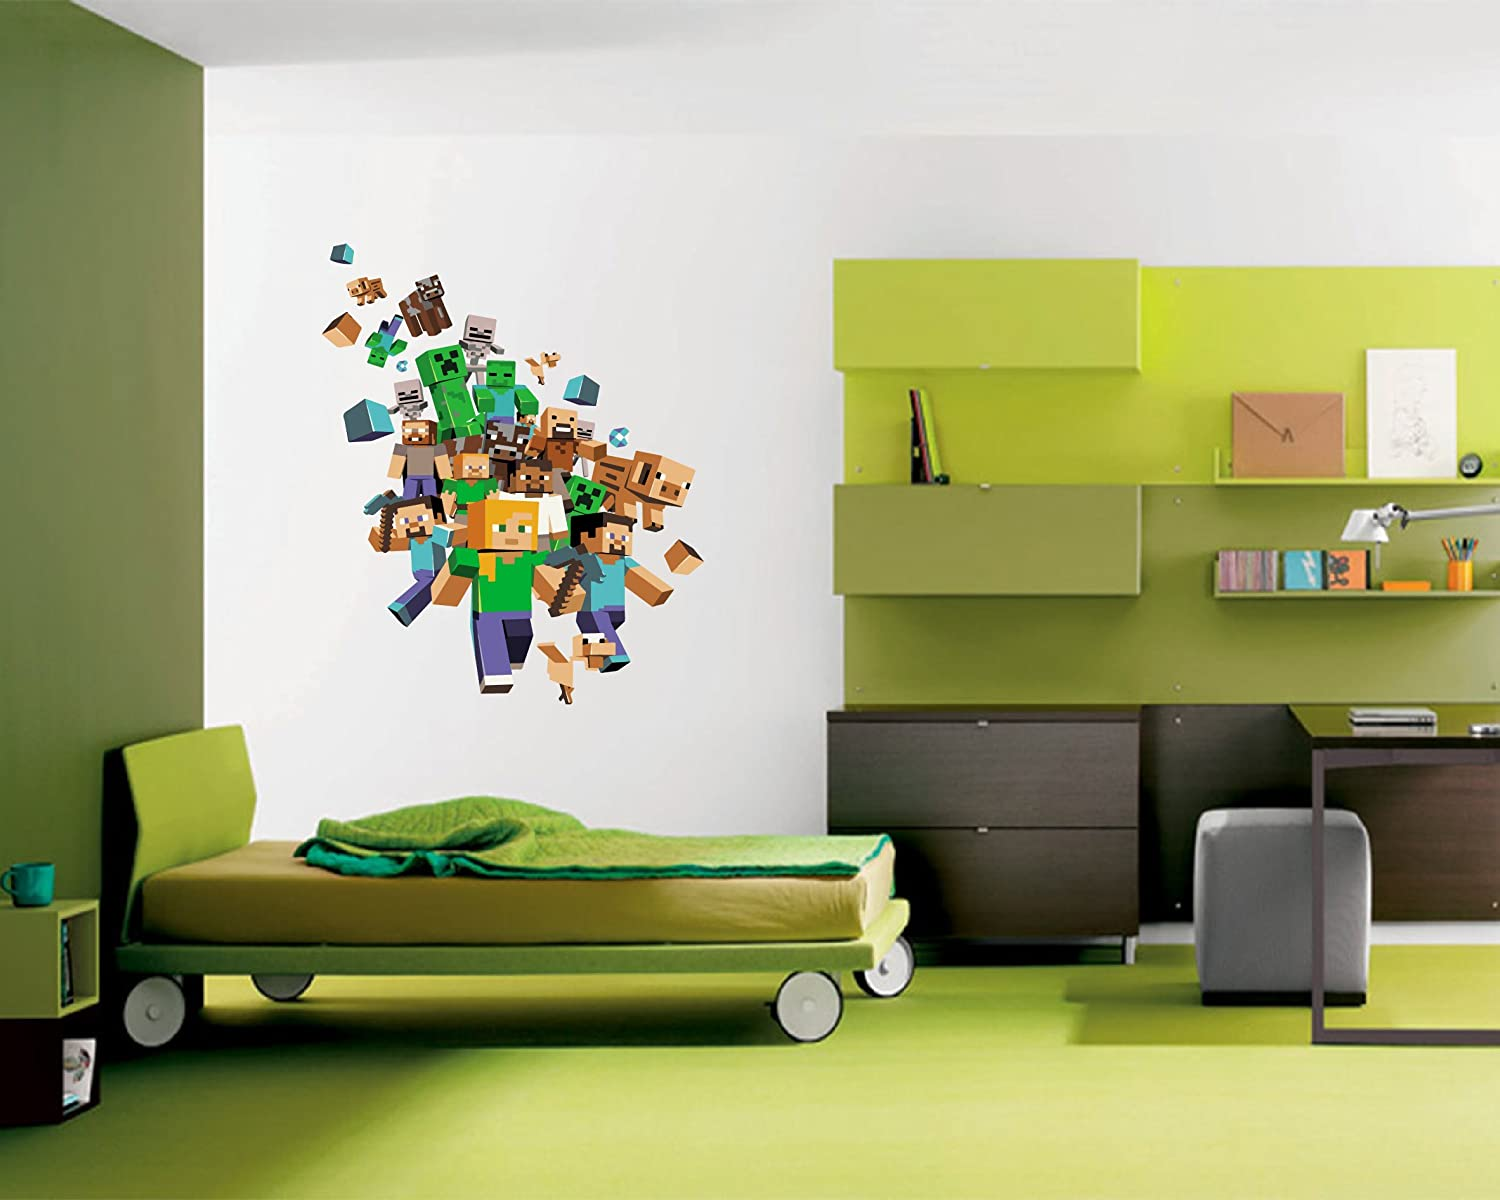 minecraft wall decals related keywords amp suggestions minecraft wall decals google search minecraft